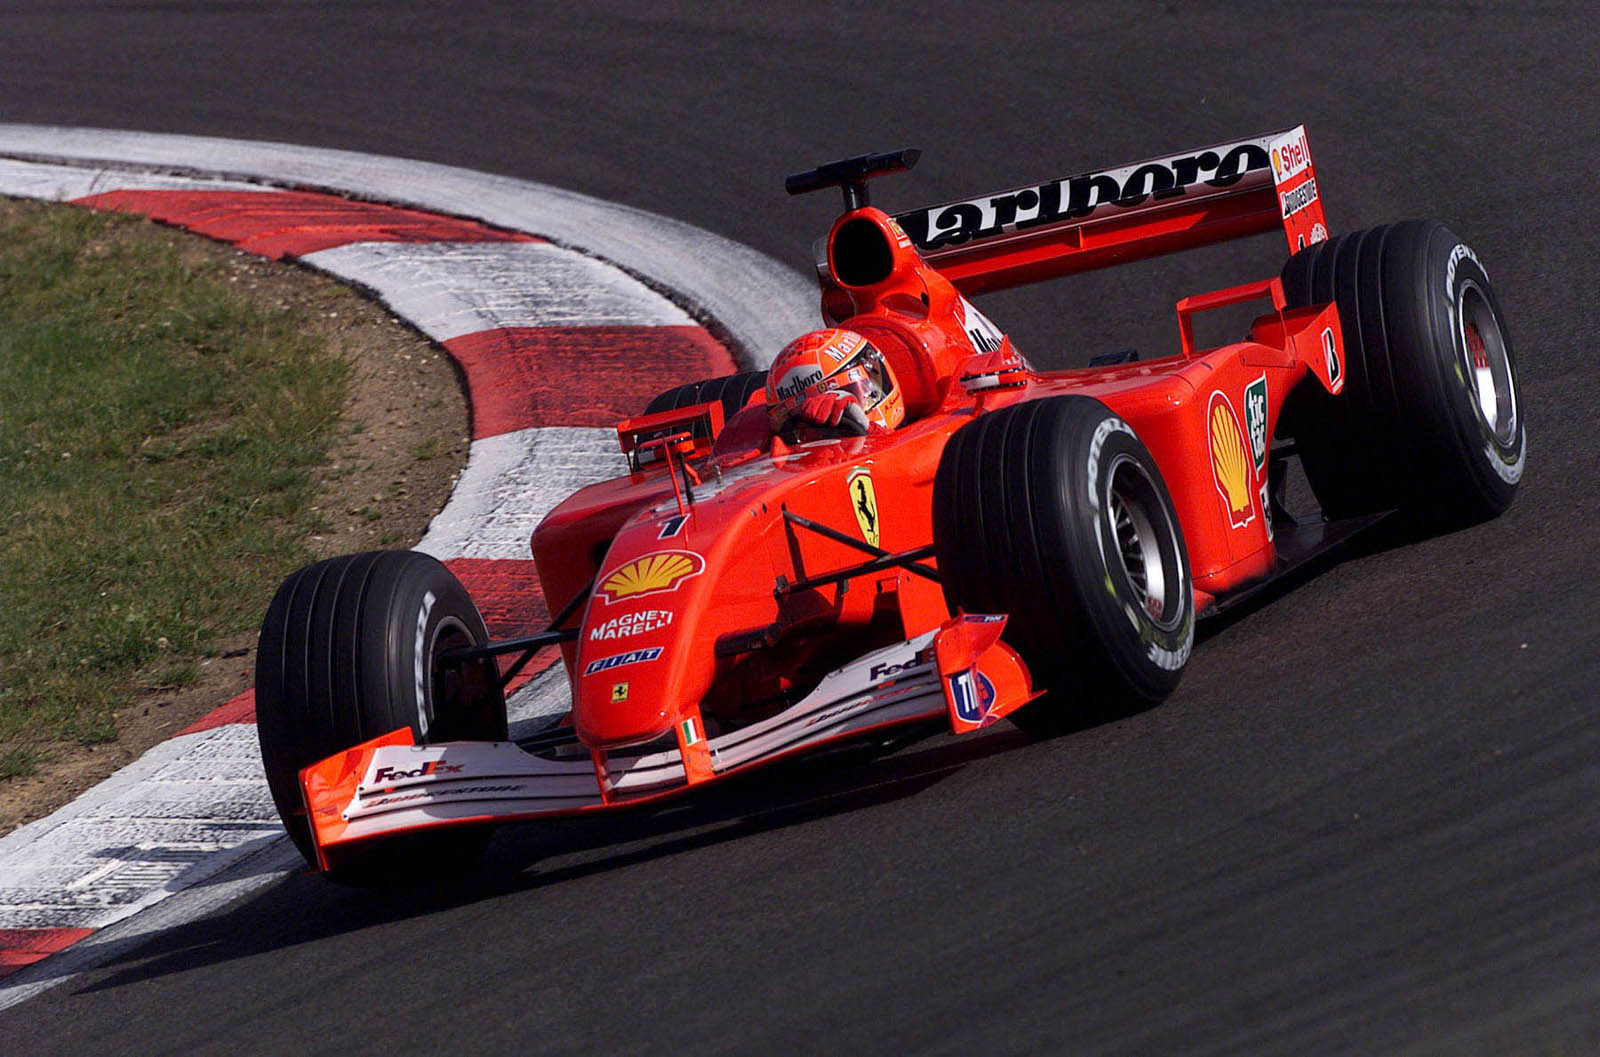 michael schumacher s ferrari f2001 estimated to fetch 4. Black Bedroom Furniture Sets. Home Design Ideas